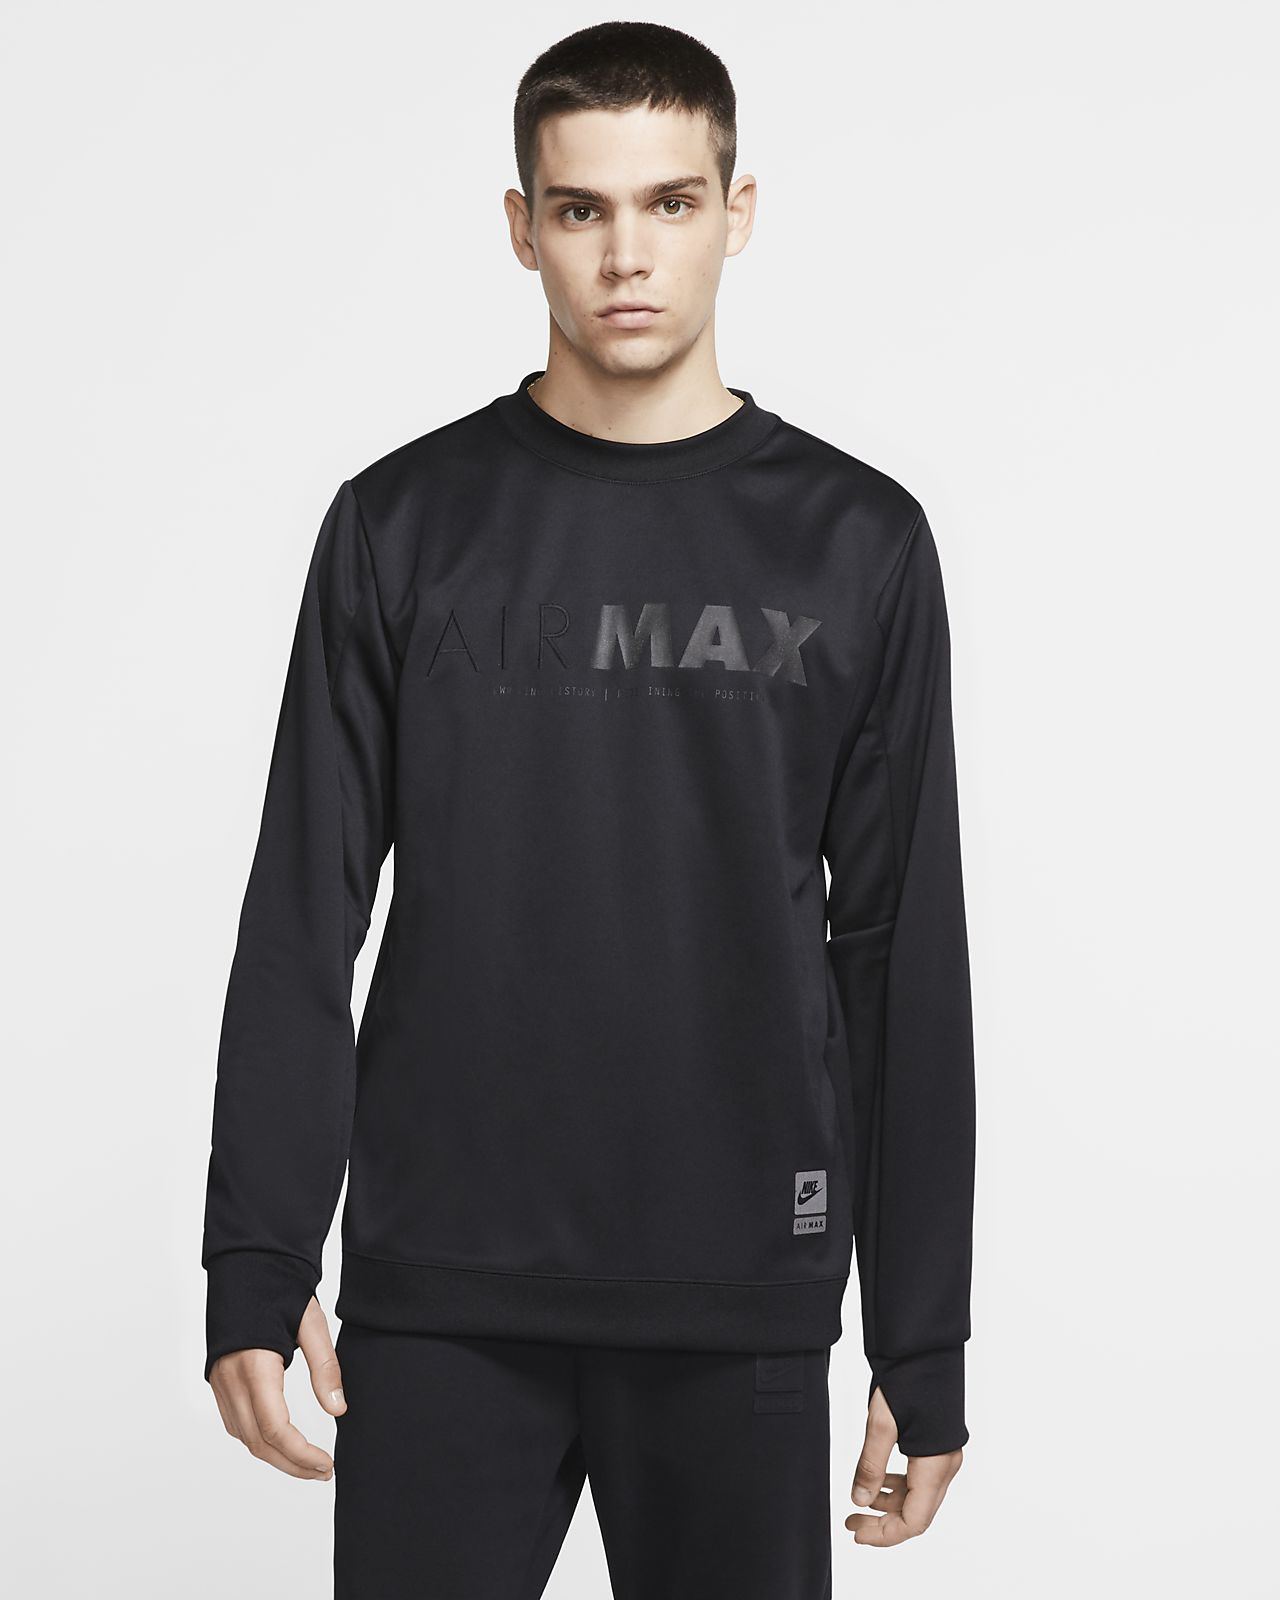 Nike Sportswear Air Max Men's Crew